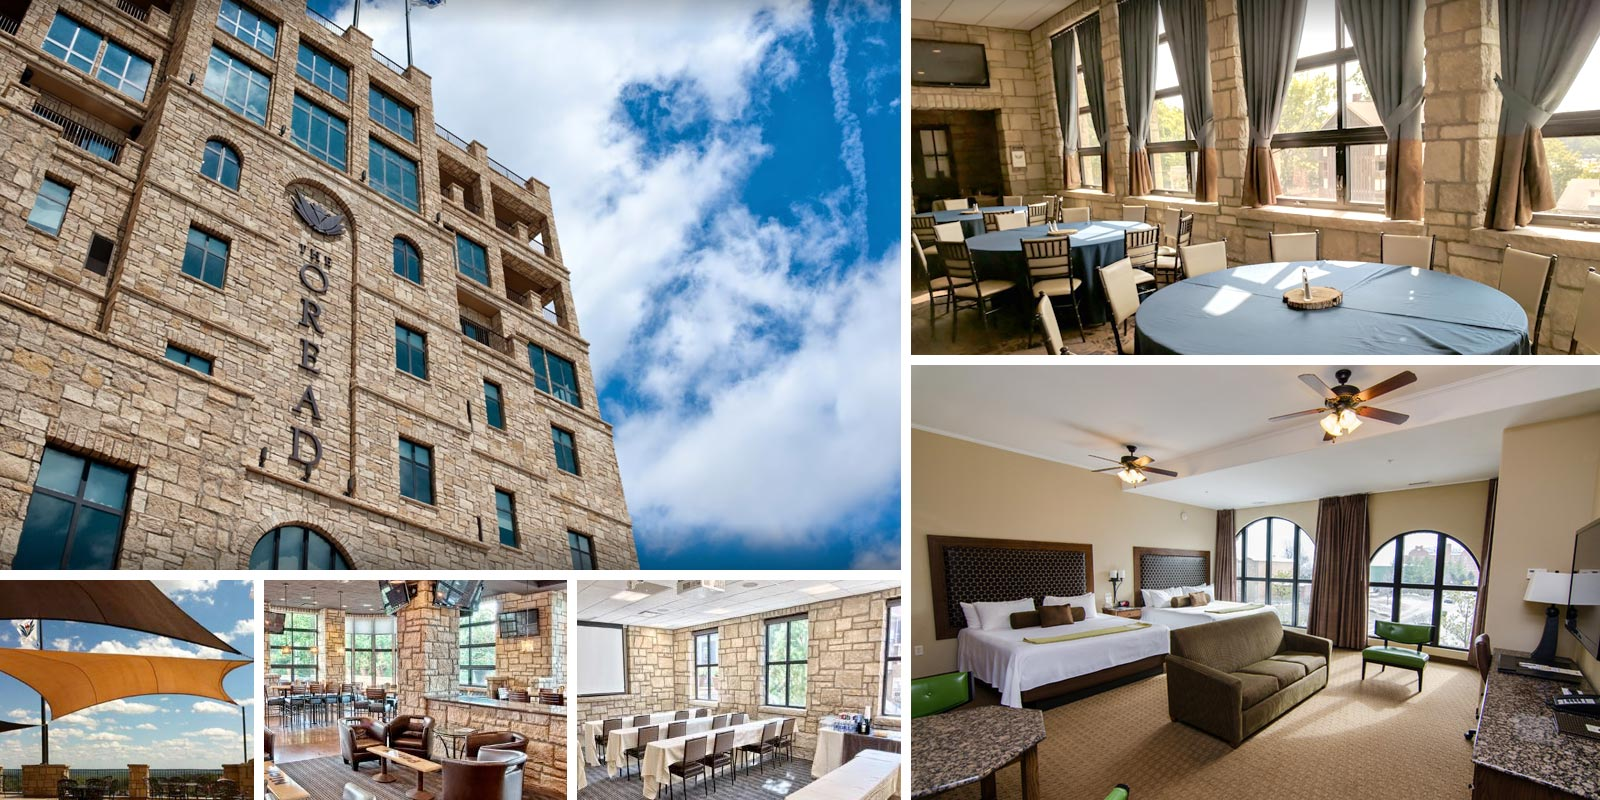 lawrence_oread hotel